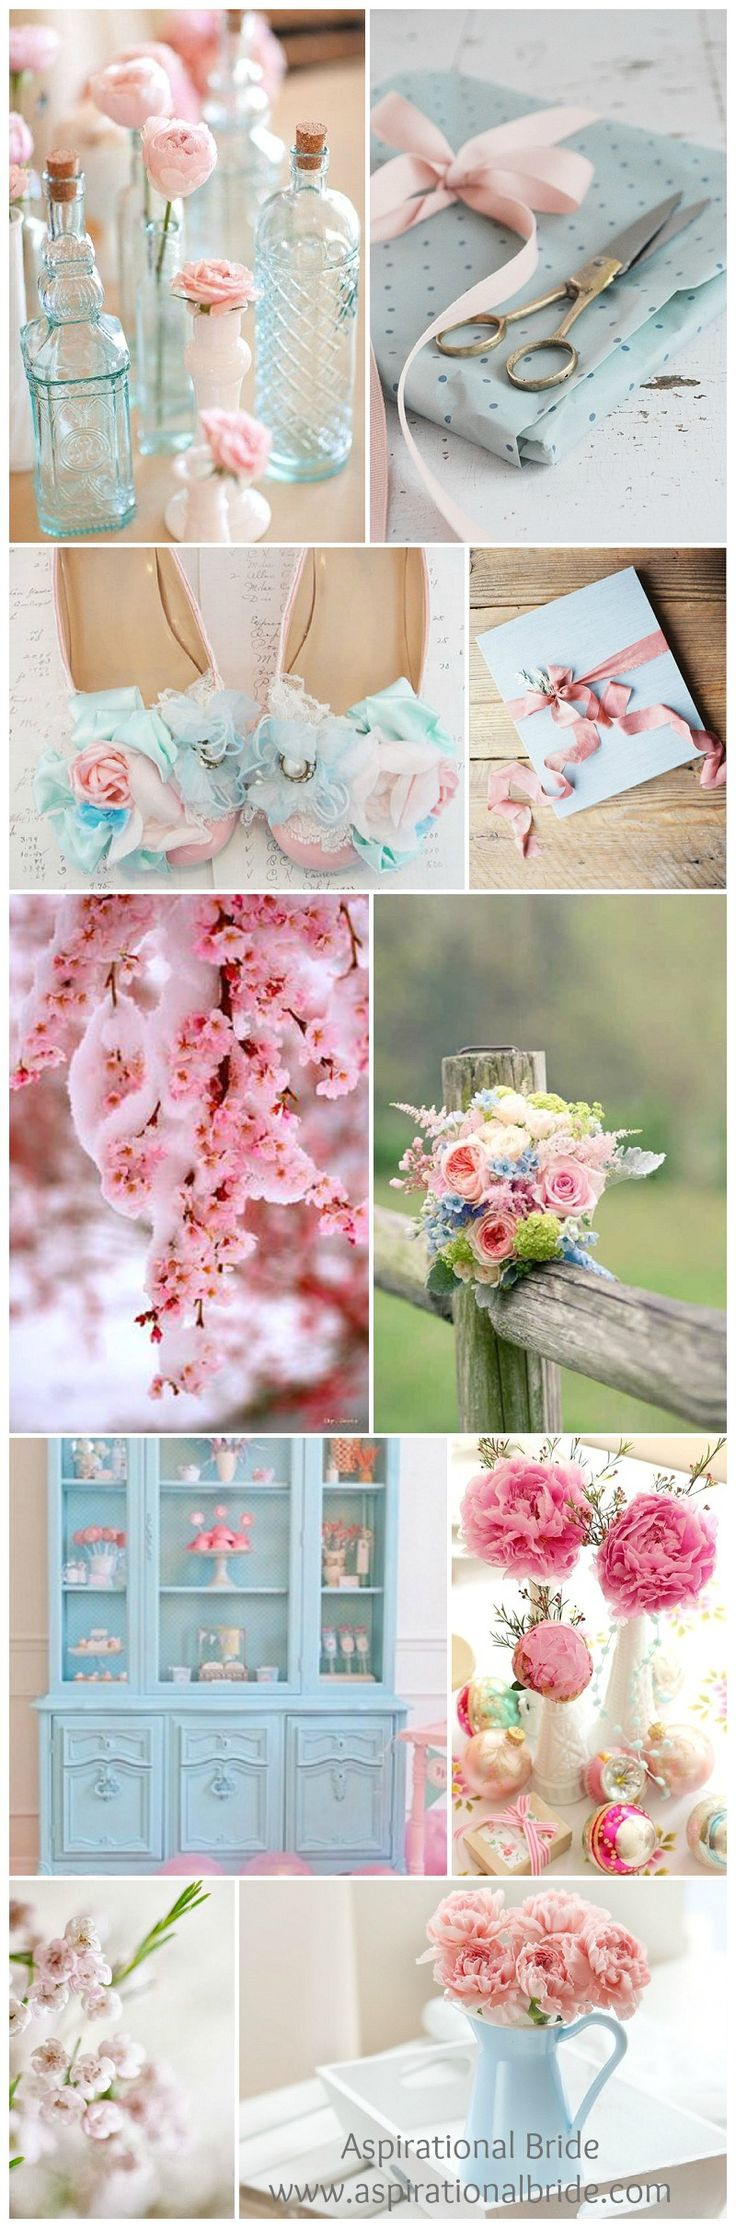 Iced / pastel pink wedding theme inspiration. Nice for a blush wedding. #AspirationalBride